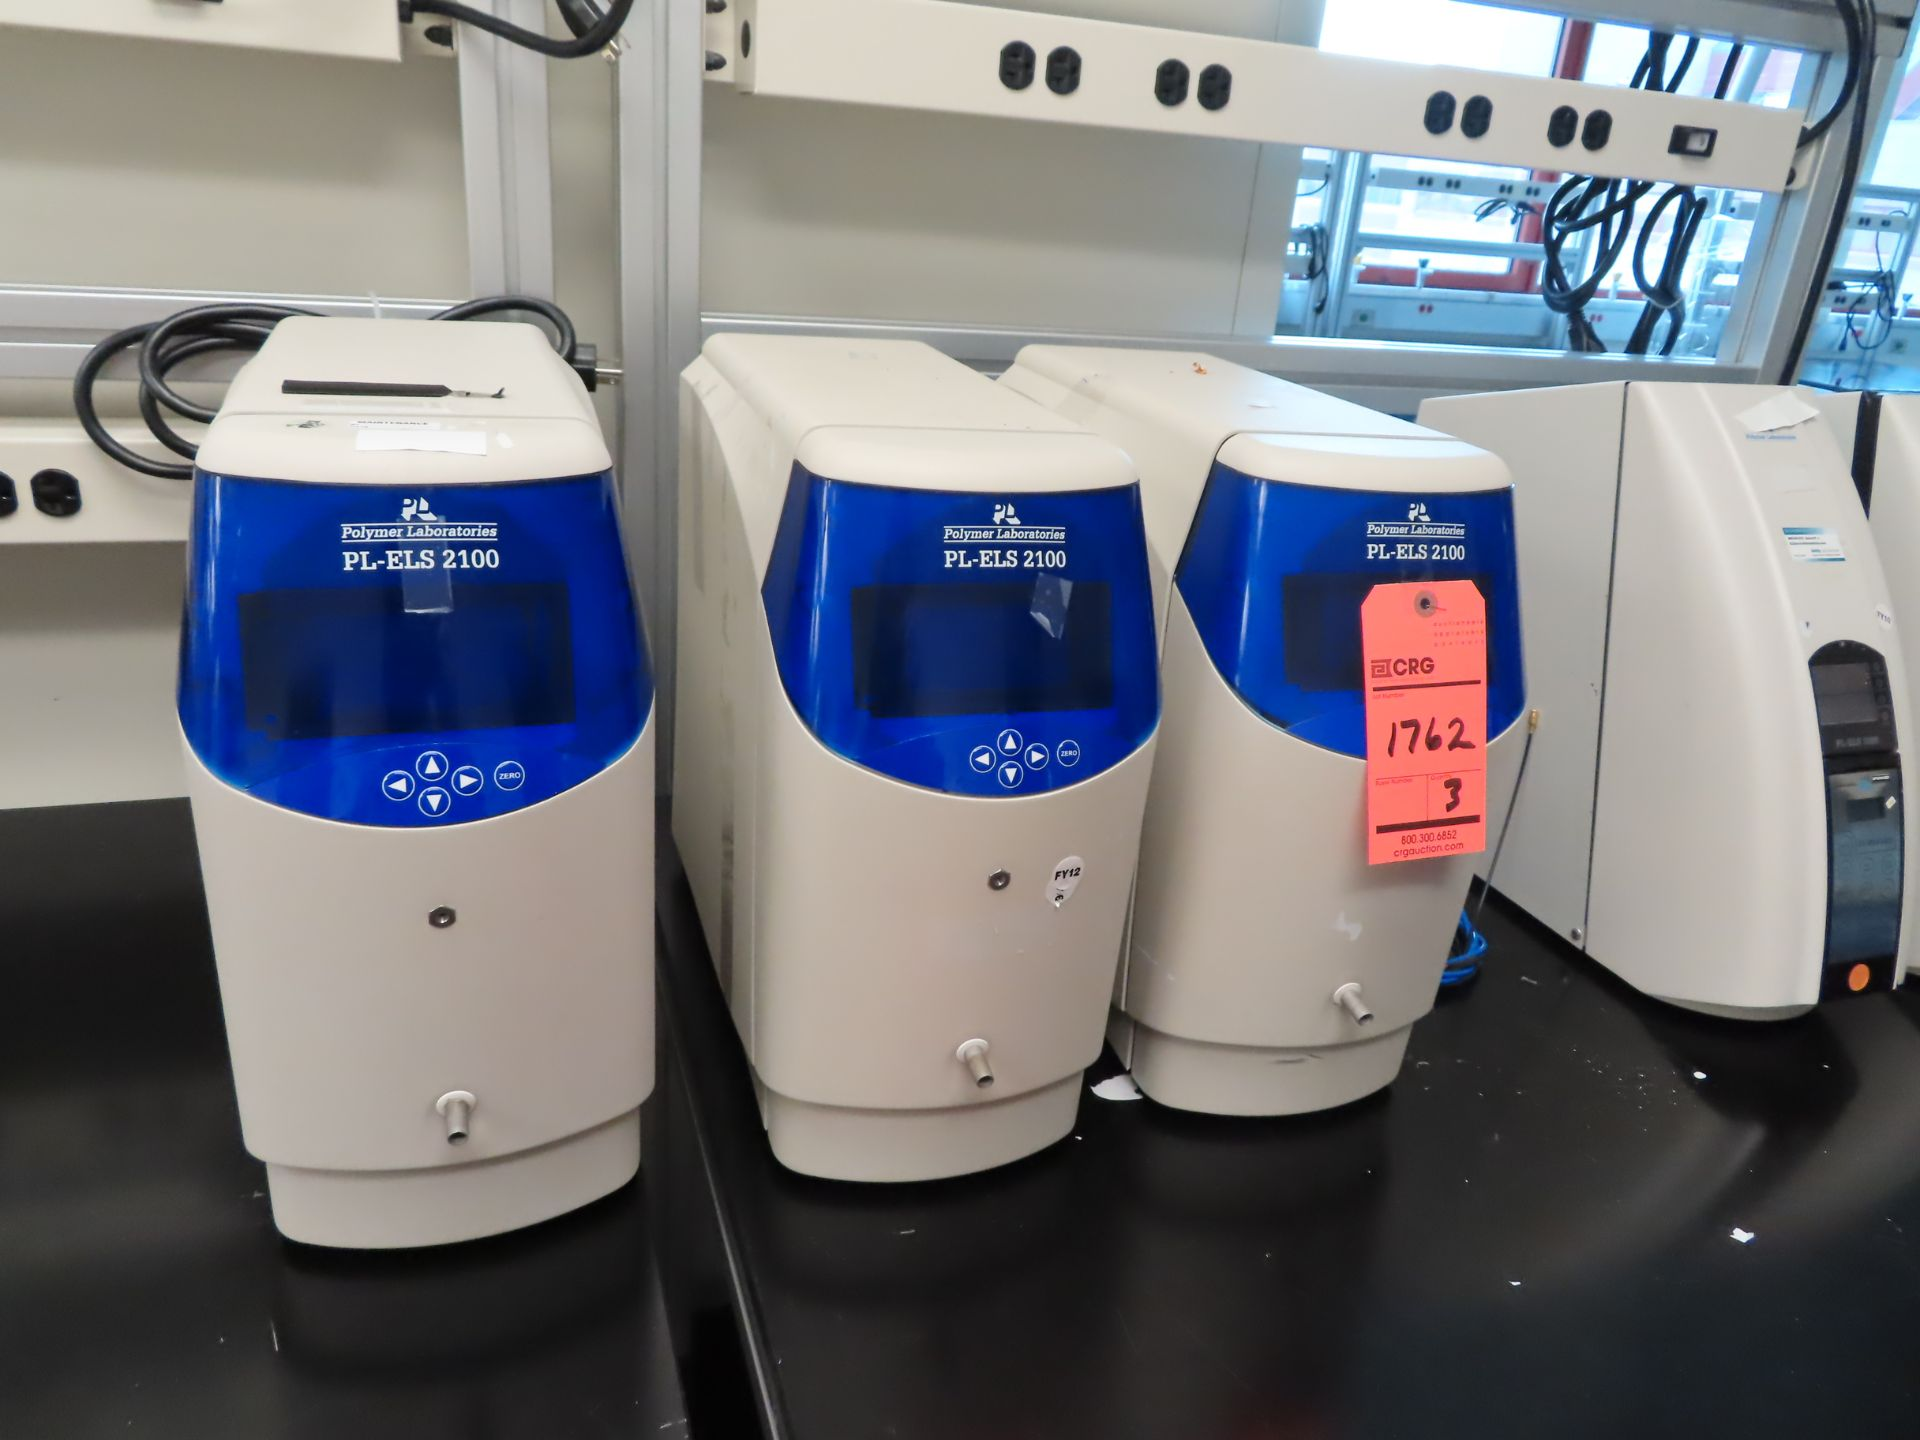 Lot 1762 - Lot of (3) Polymer Laboritories PL-ELS 2100 Evaporative light scattering detectors, located in B